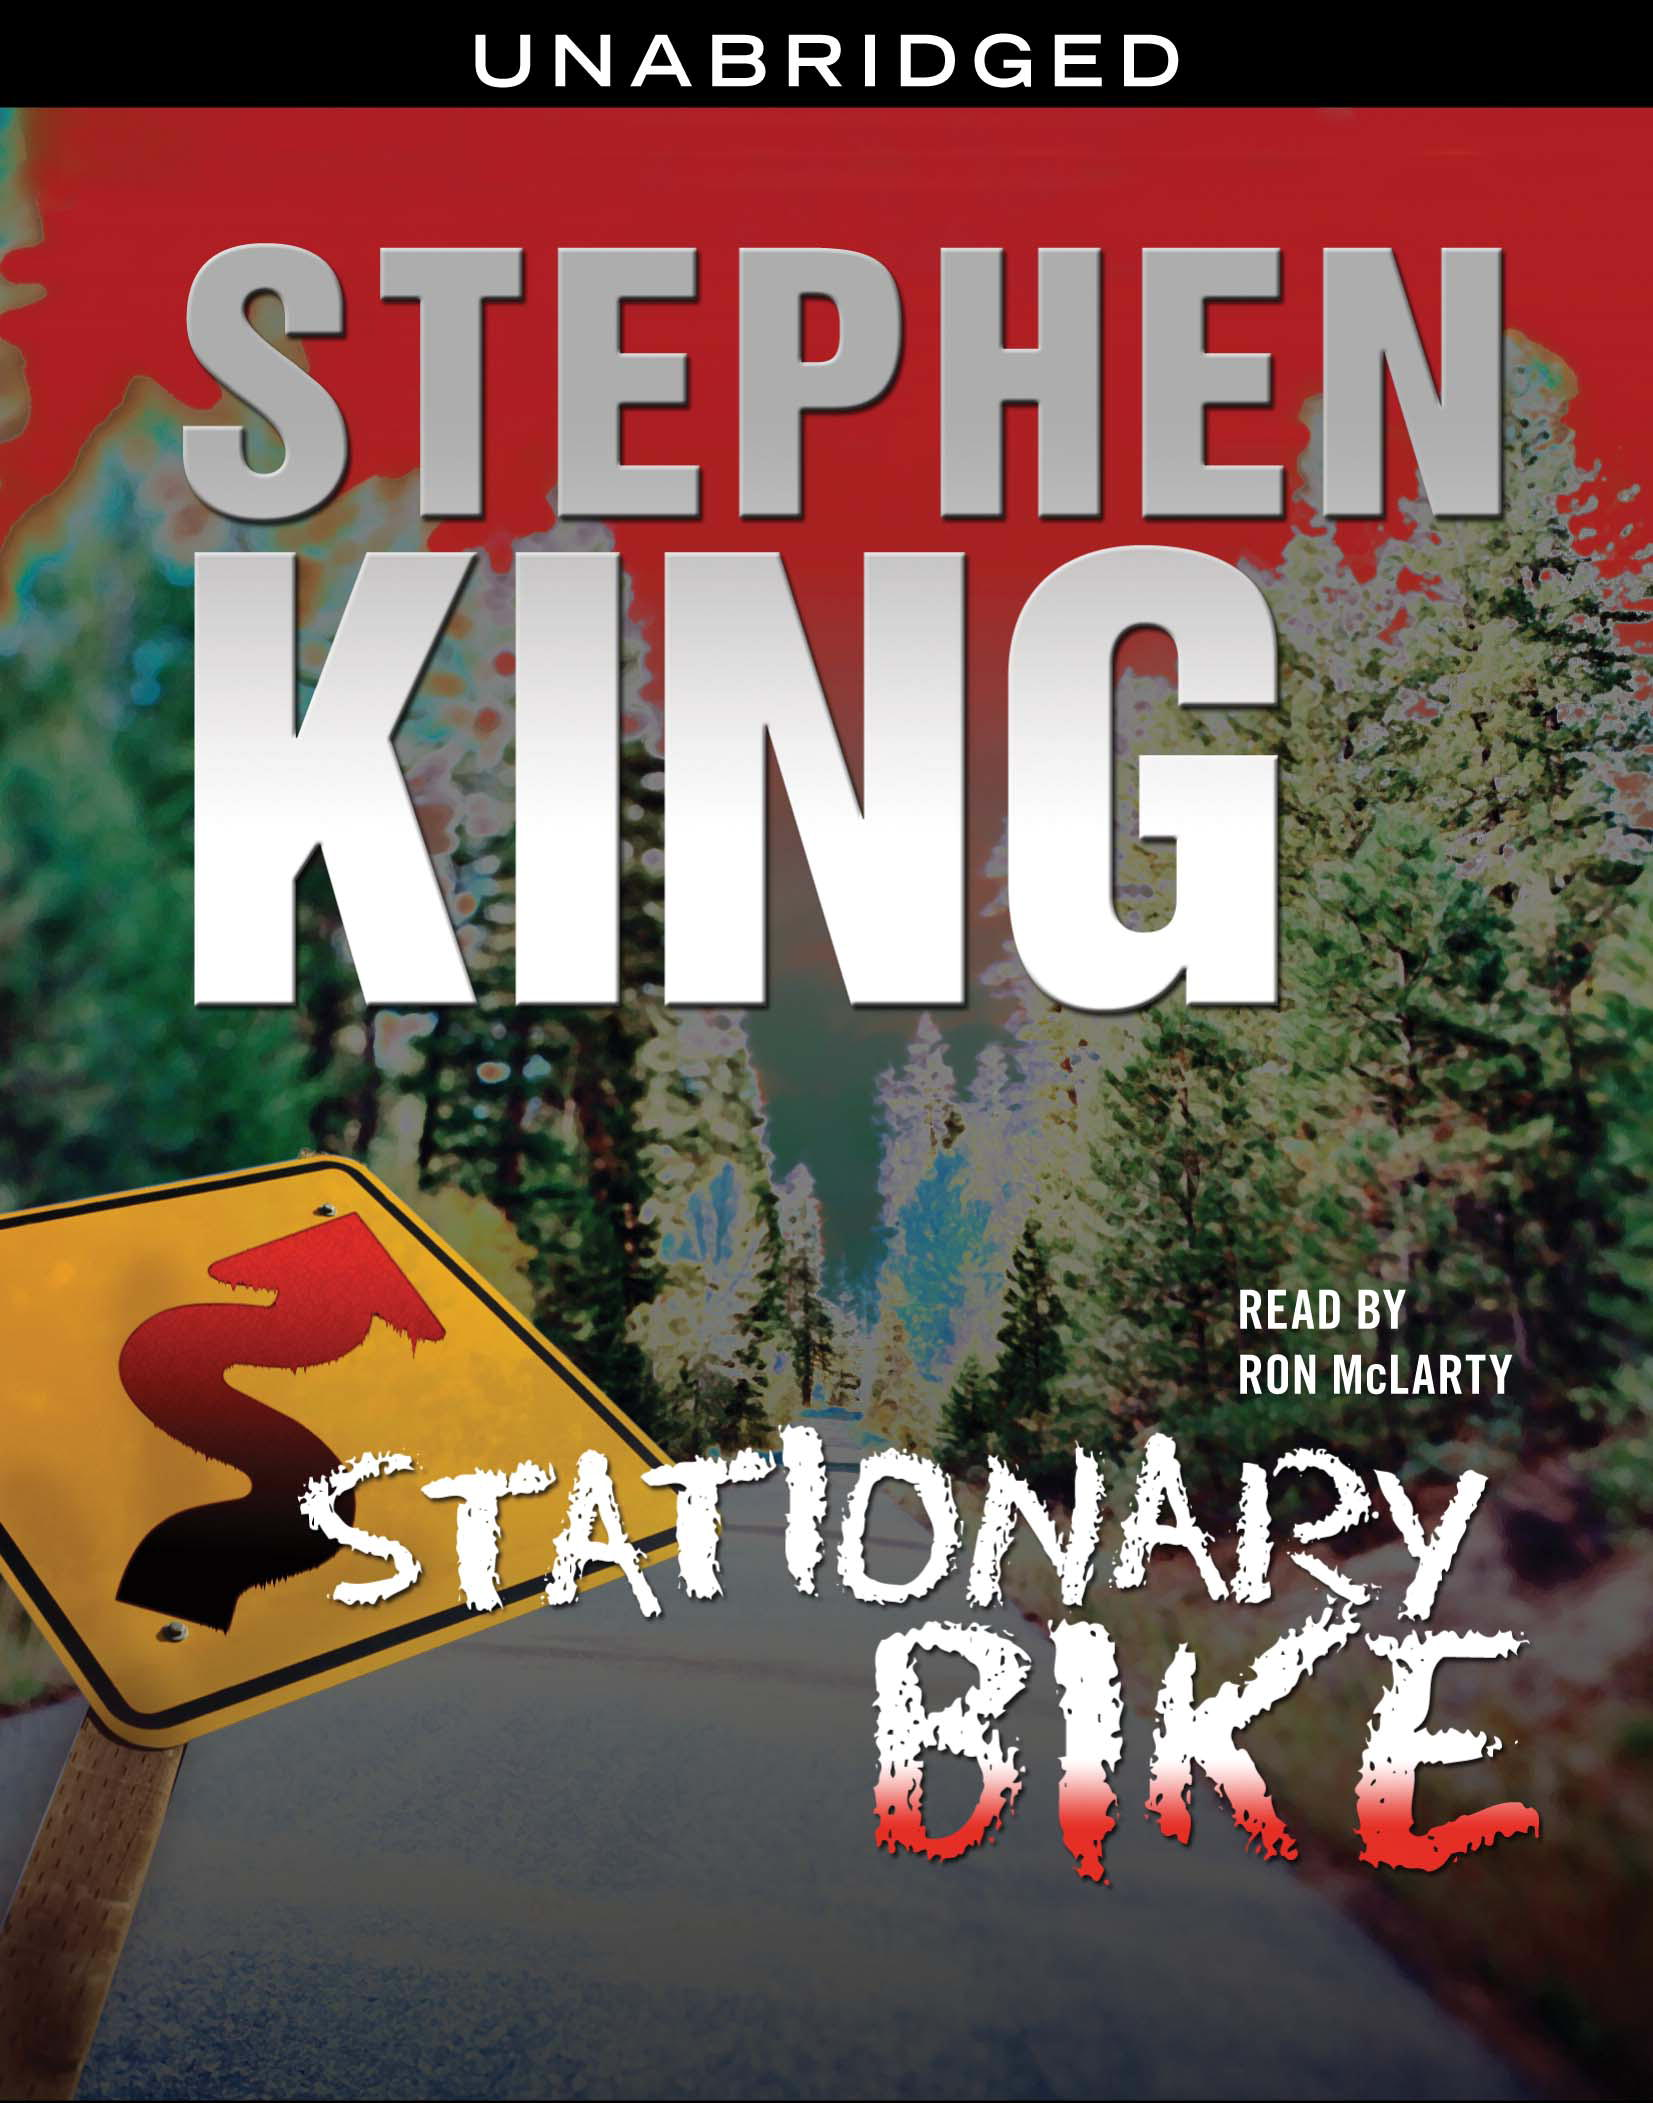 stationary bike audiobook by stephen king, ron mclarty | official